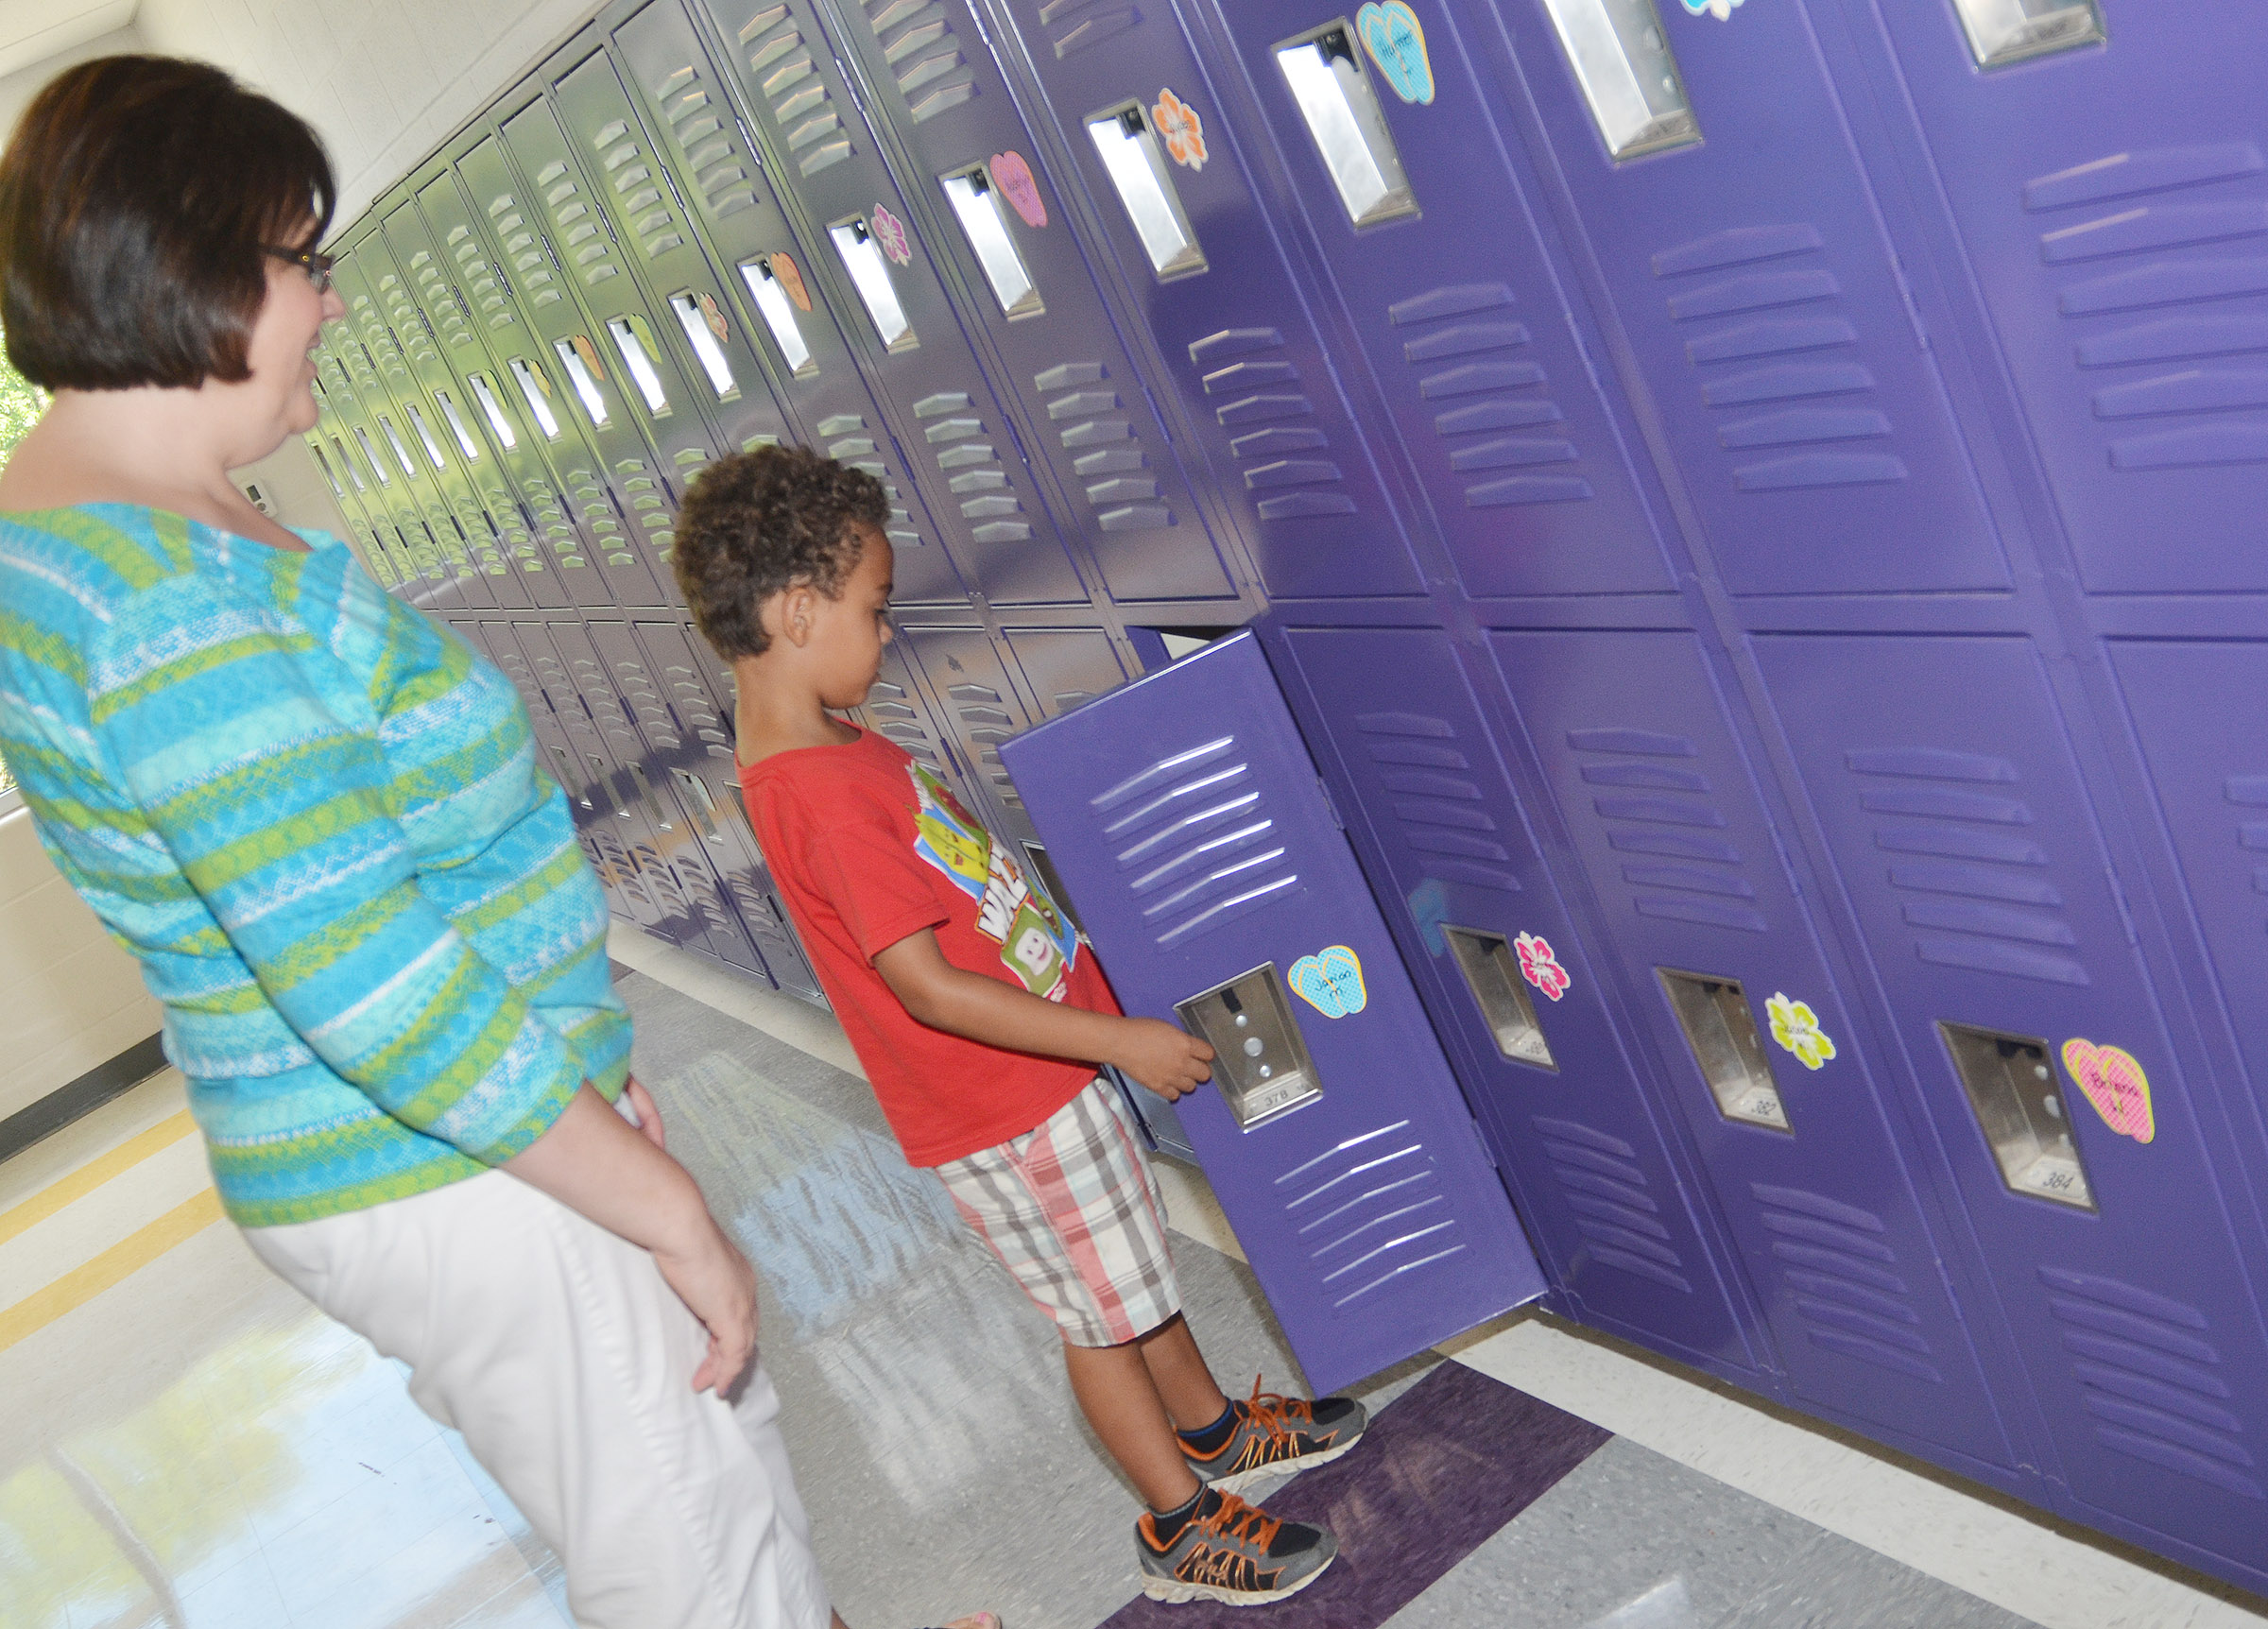 CES second-grade teacher Tonya Hagan helps her student Javion Milby find his locker.